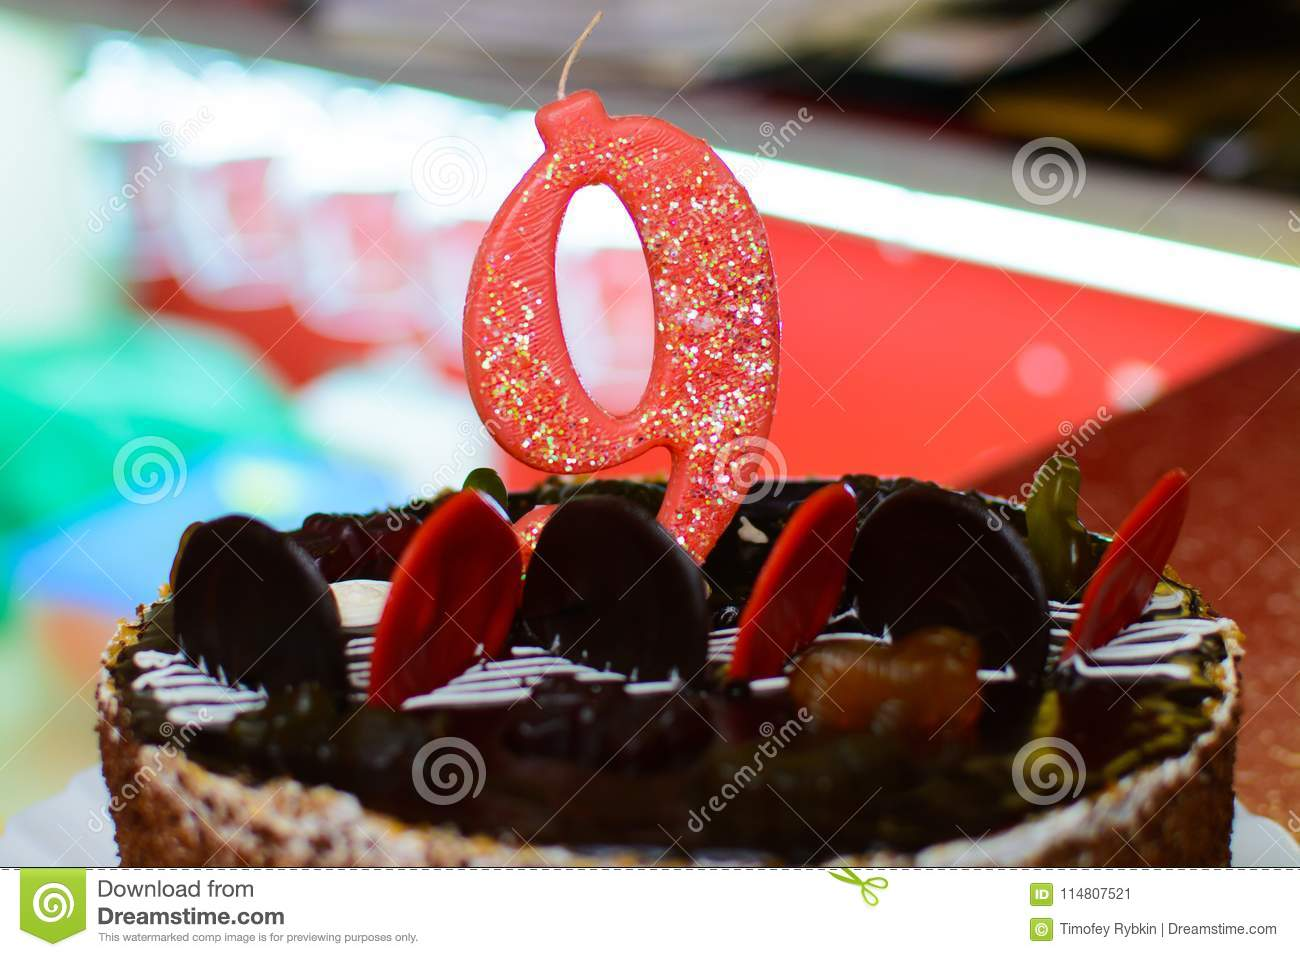 A Close Up Cake With The Number 9 On Birthday Decorated Sweets